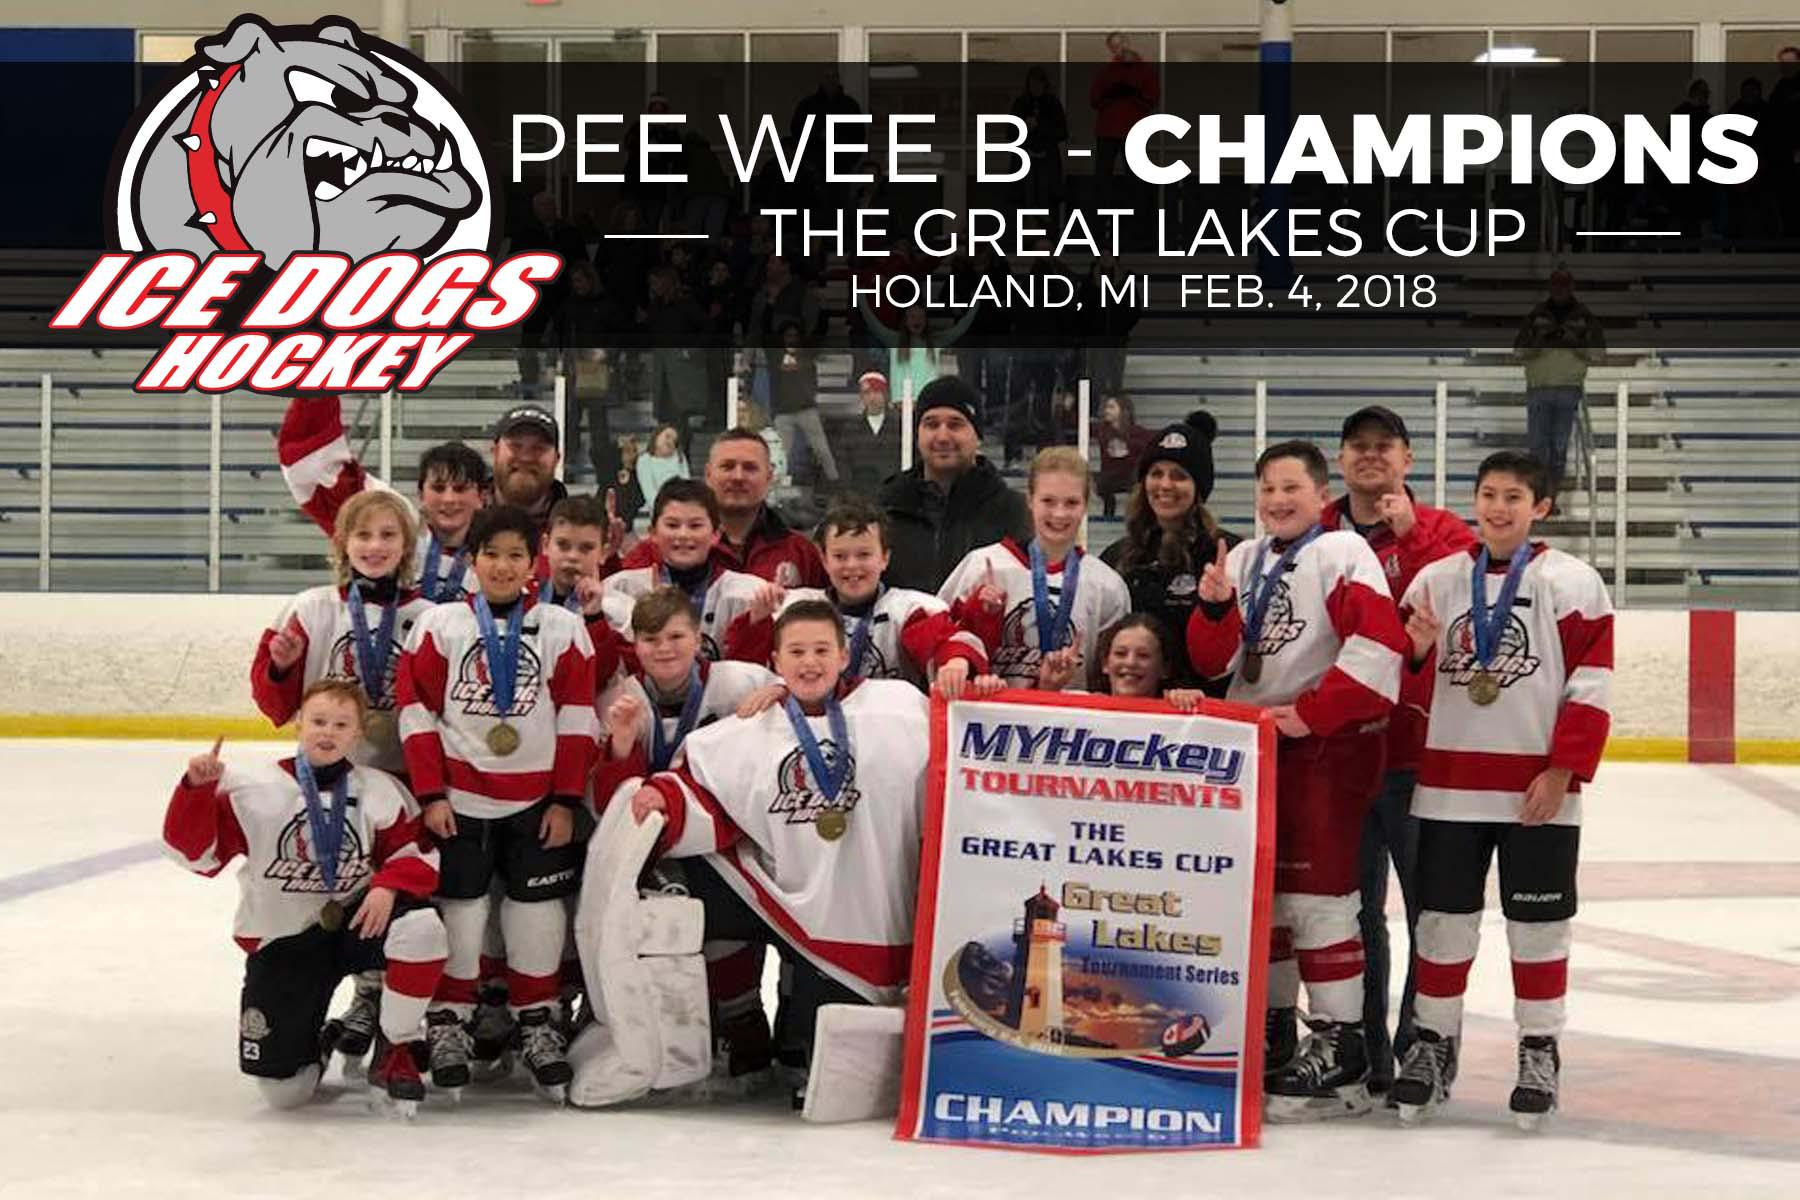 Great Lakes Cup Champions